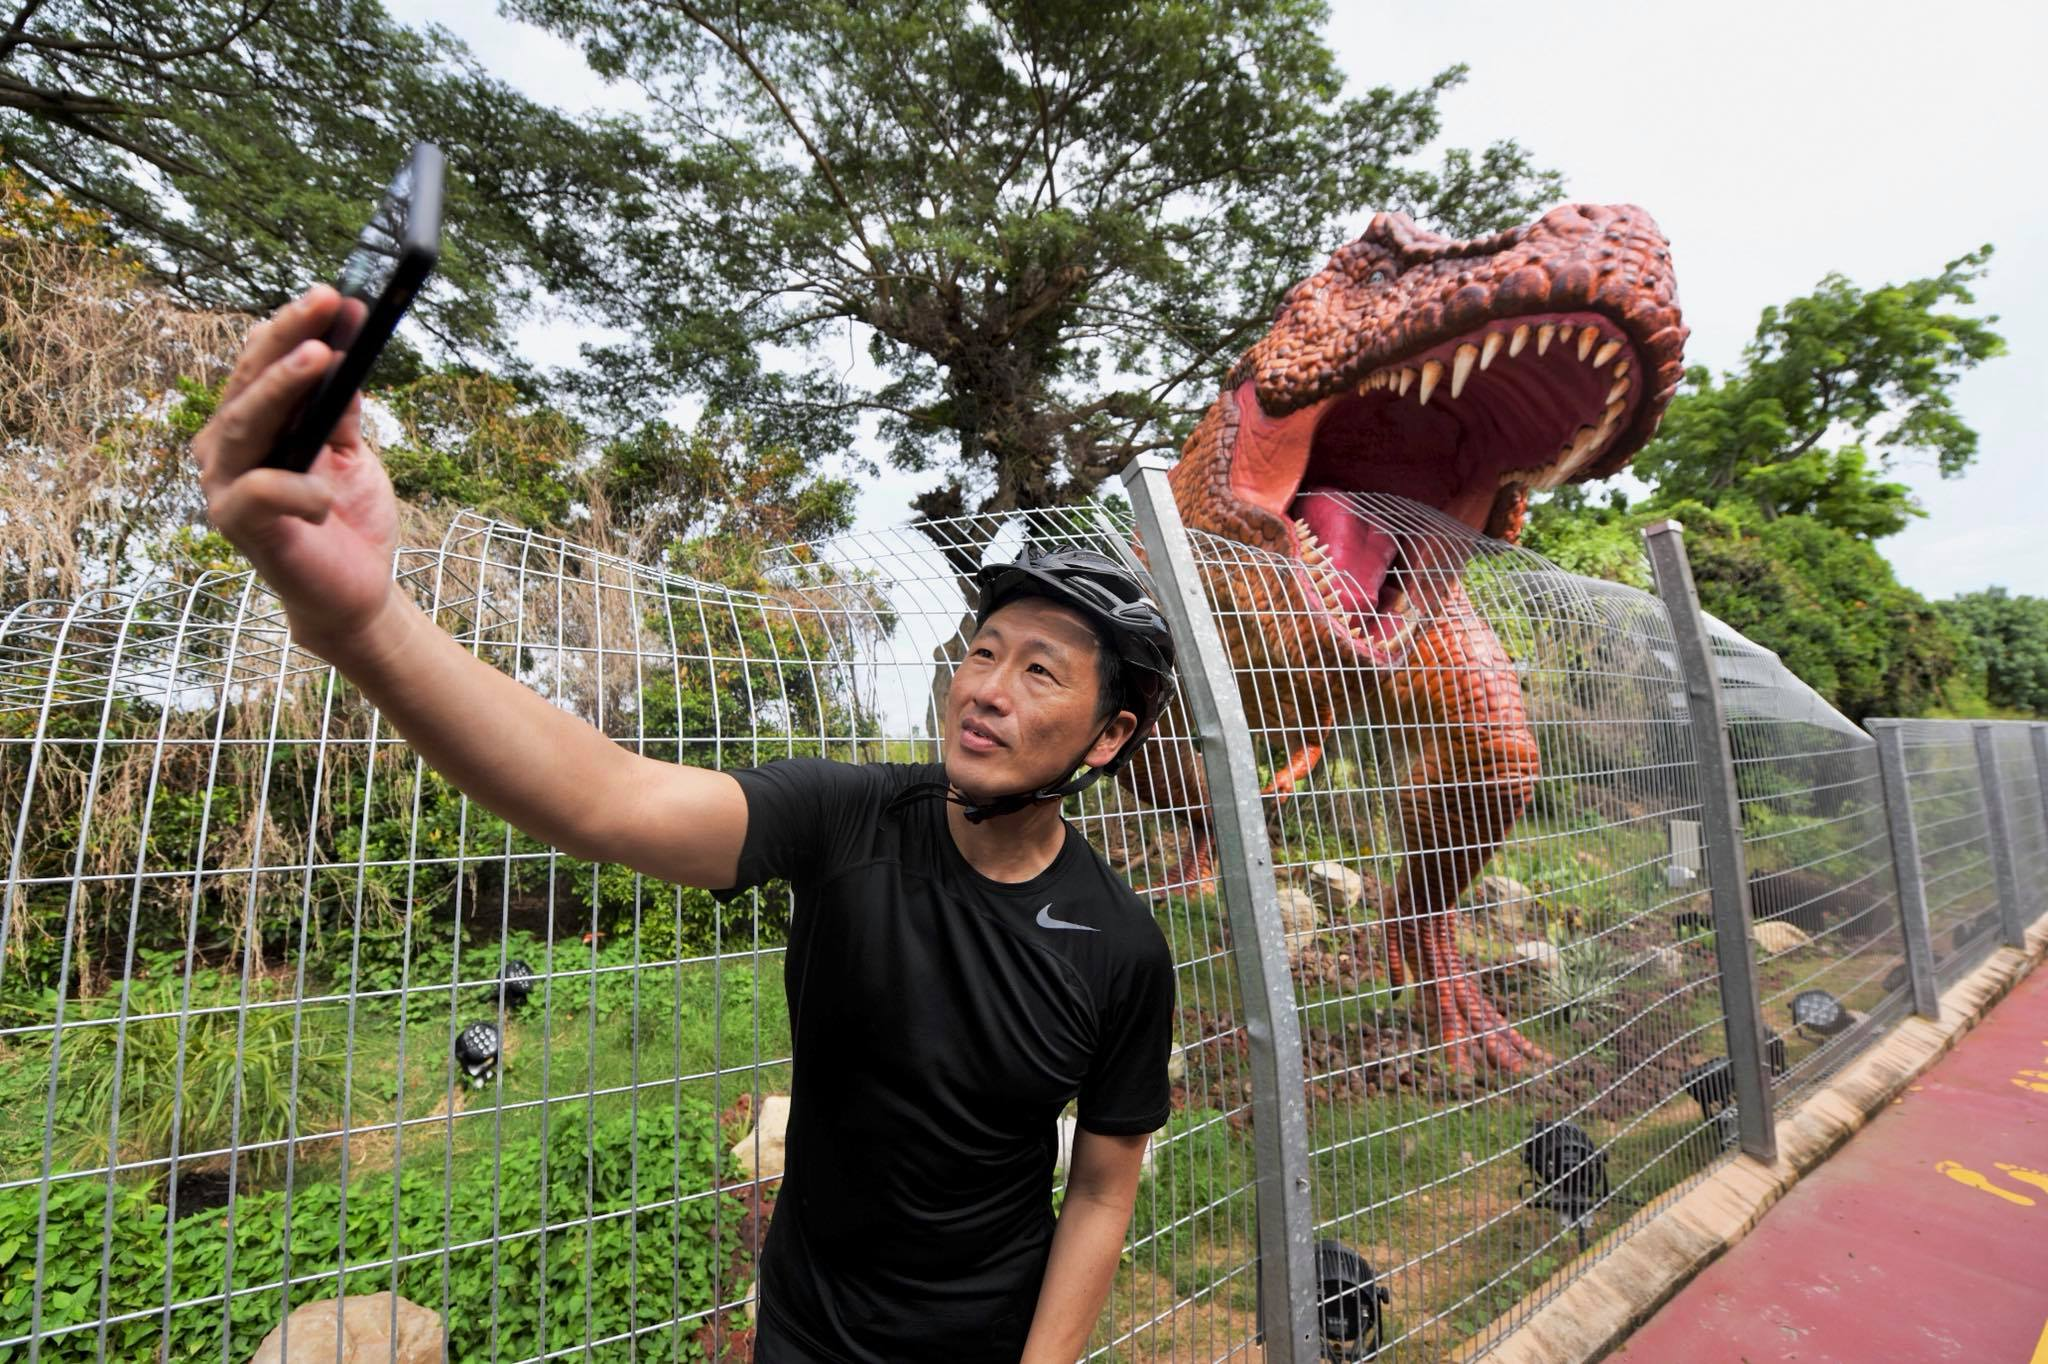 Ong Ye Kung, Minister for Transport, officiated the opening of the Changi Airport Connector and took a selfie with the T-Rex! Photo courtesy: Facebook/Ong Ye Kung